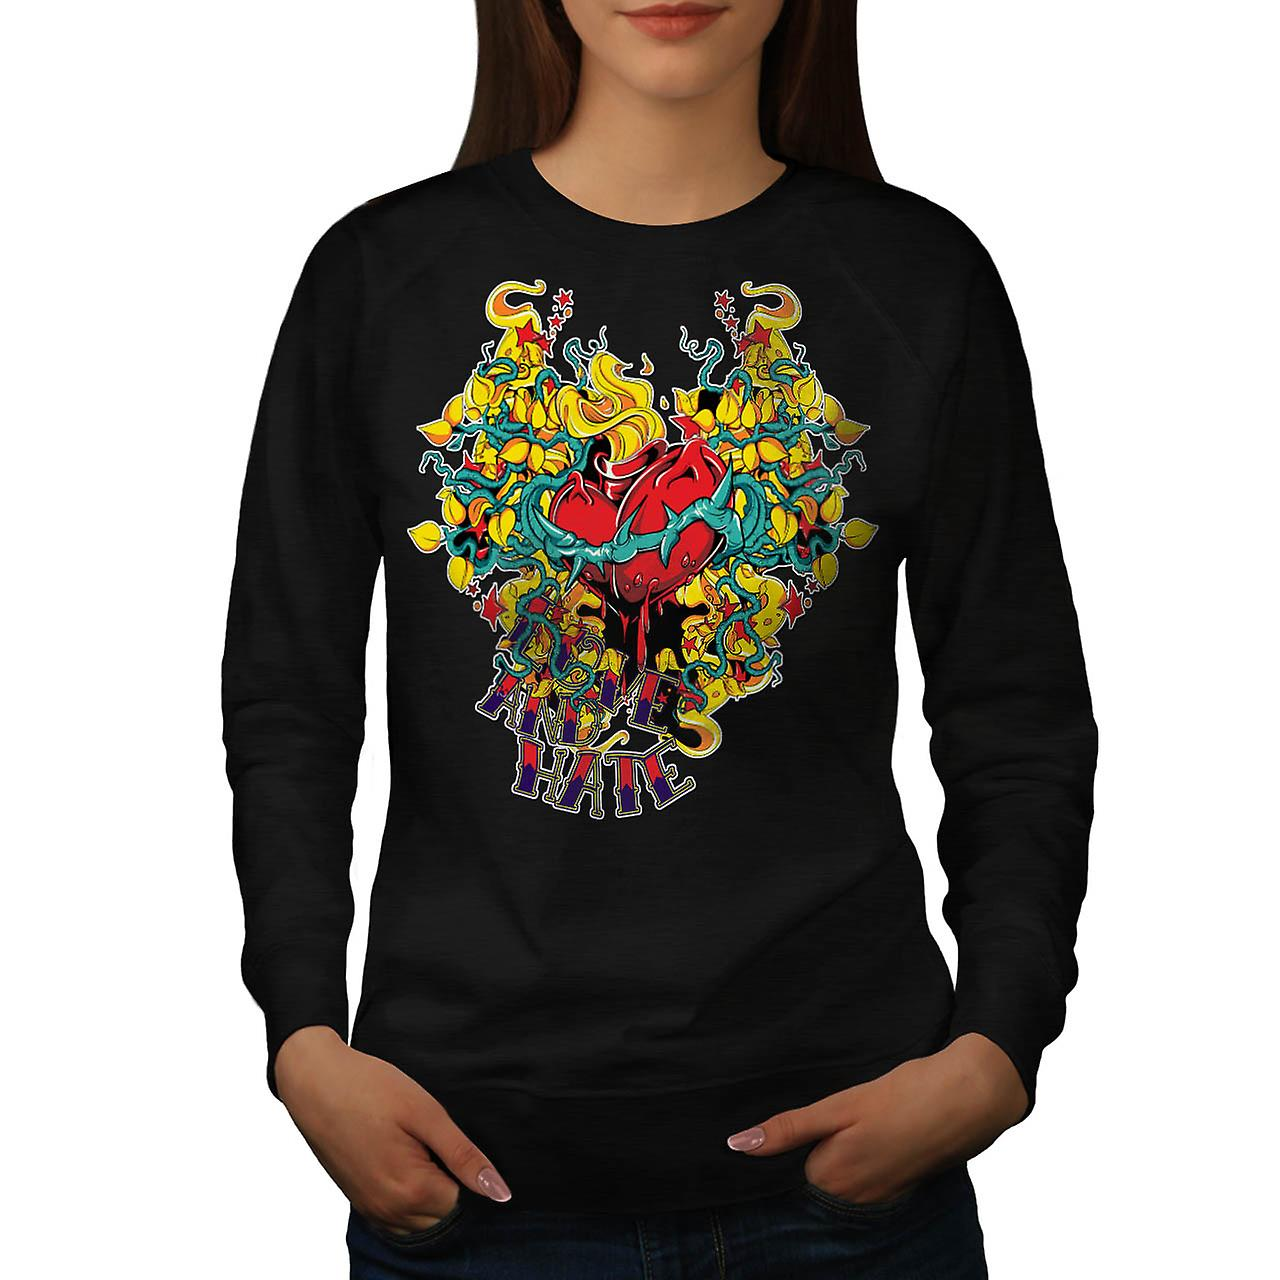 Love Hate Thorn Fashion Women Black Sweatshirt | Wellcoda